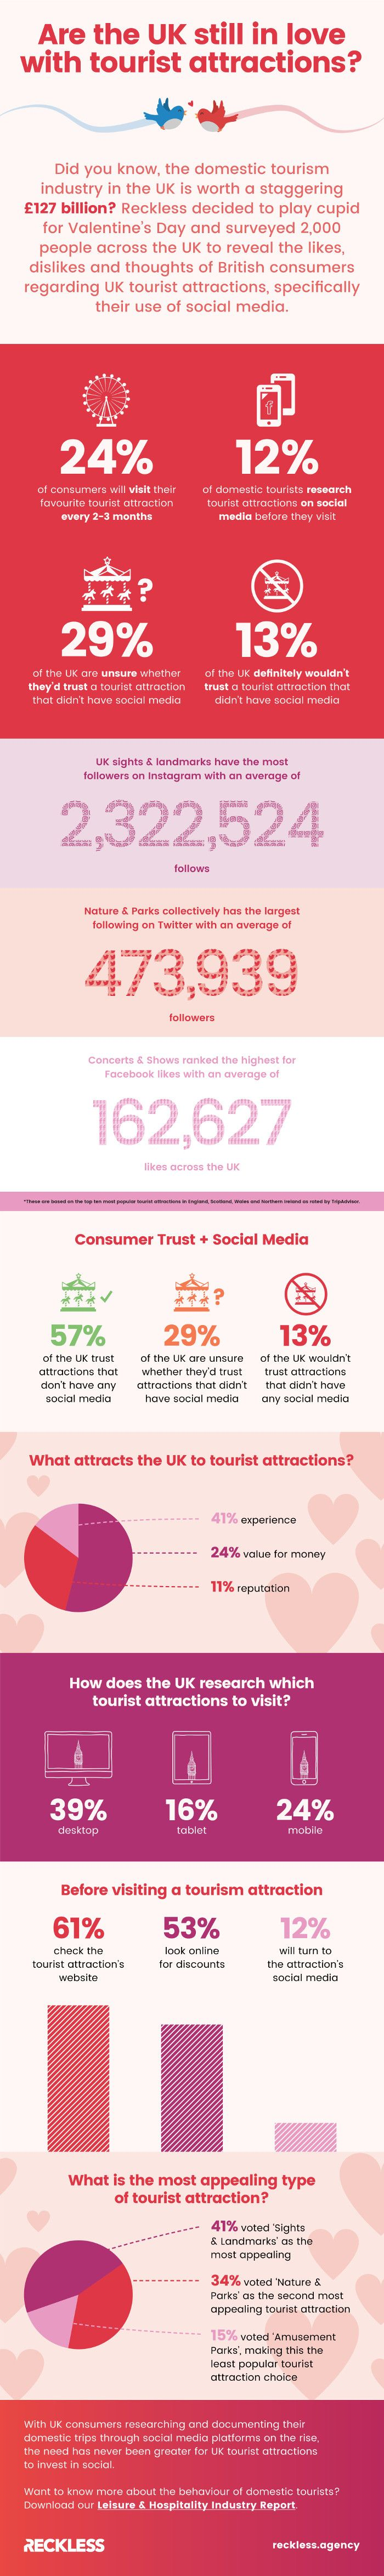 Are The UK Still In Love With Tourist Attractions?